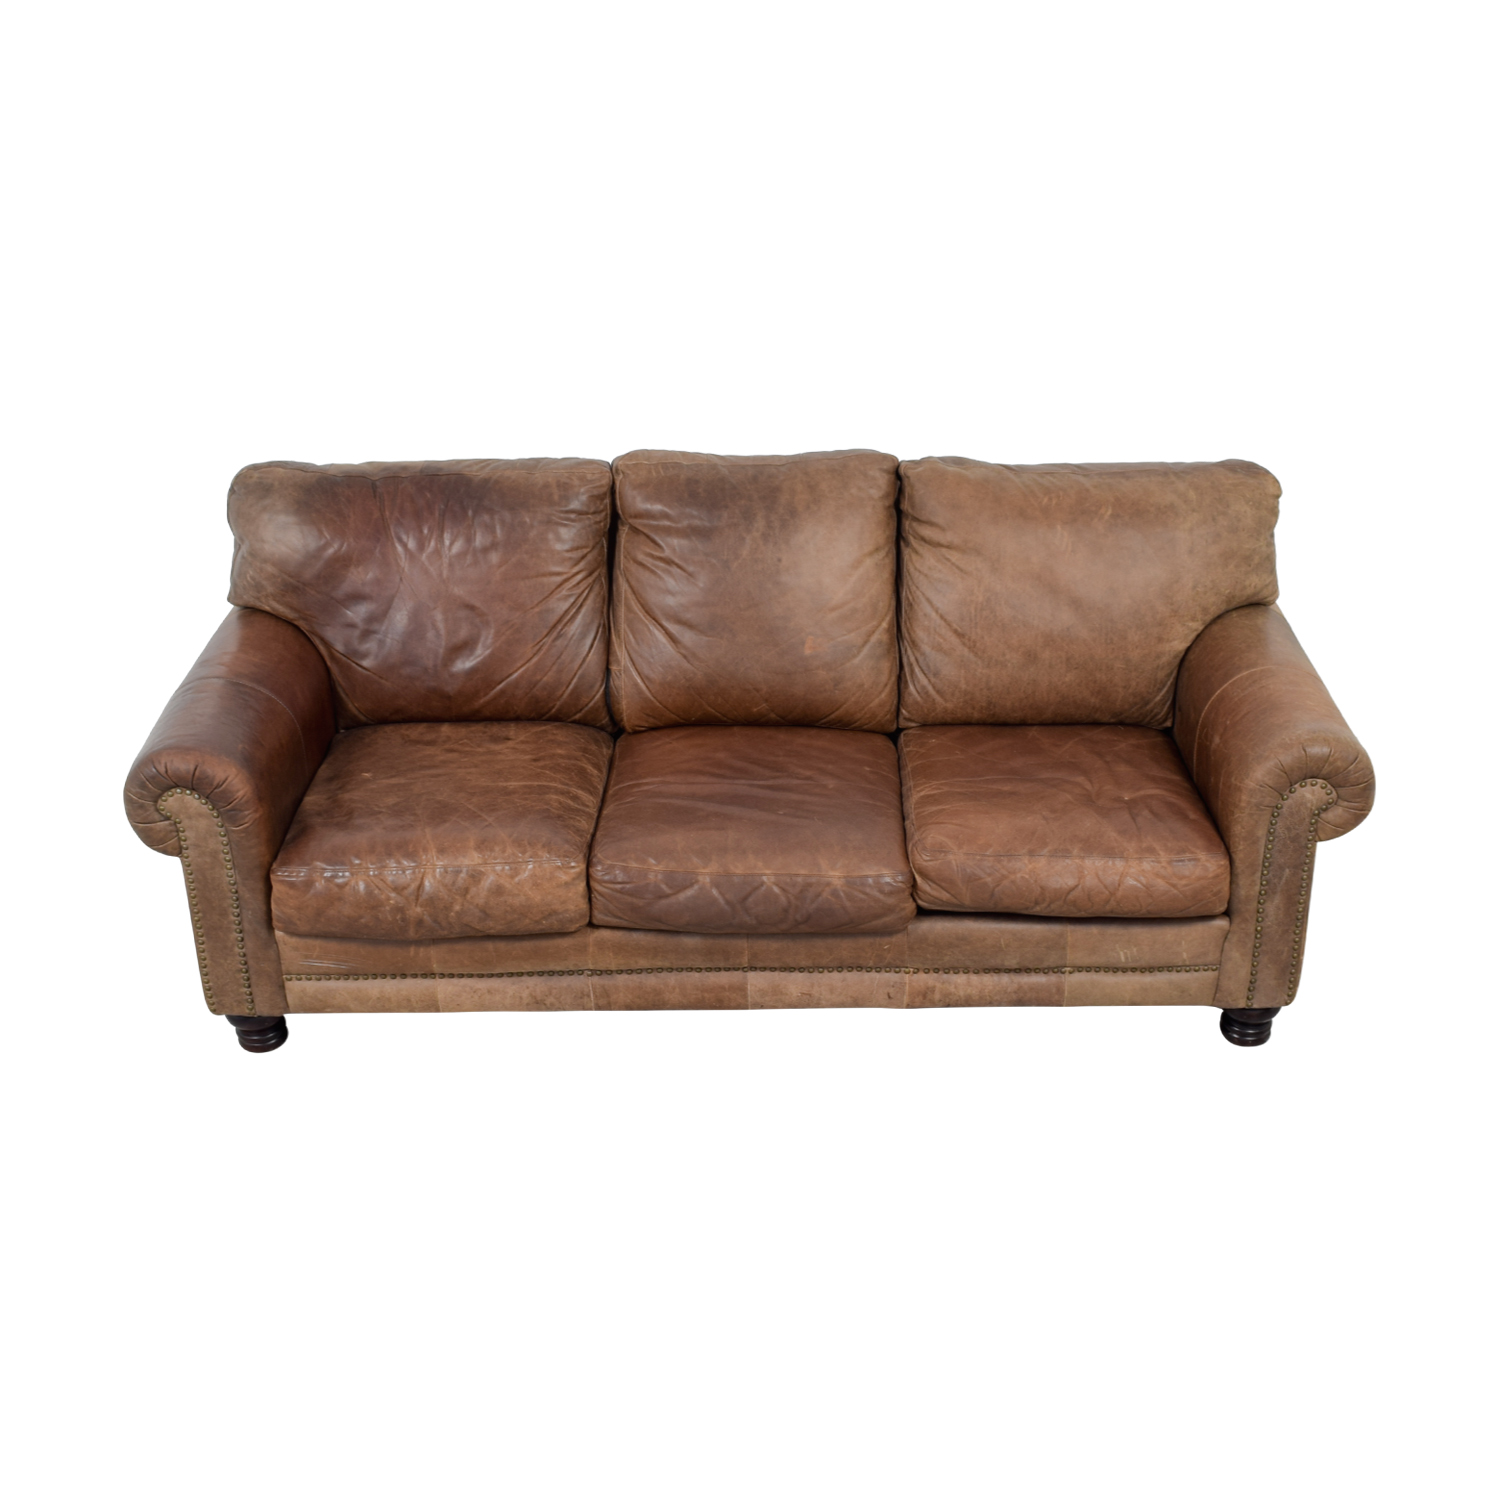 La-Z-Boy La-Z-Boy Three-Cushion Brown Leather Couch on sale